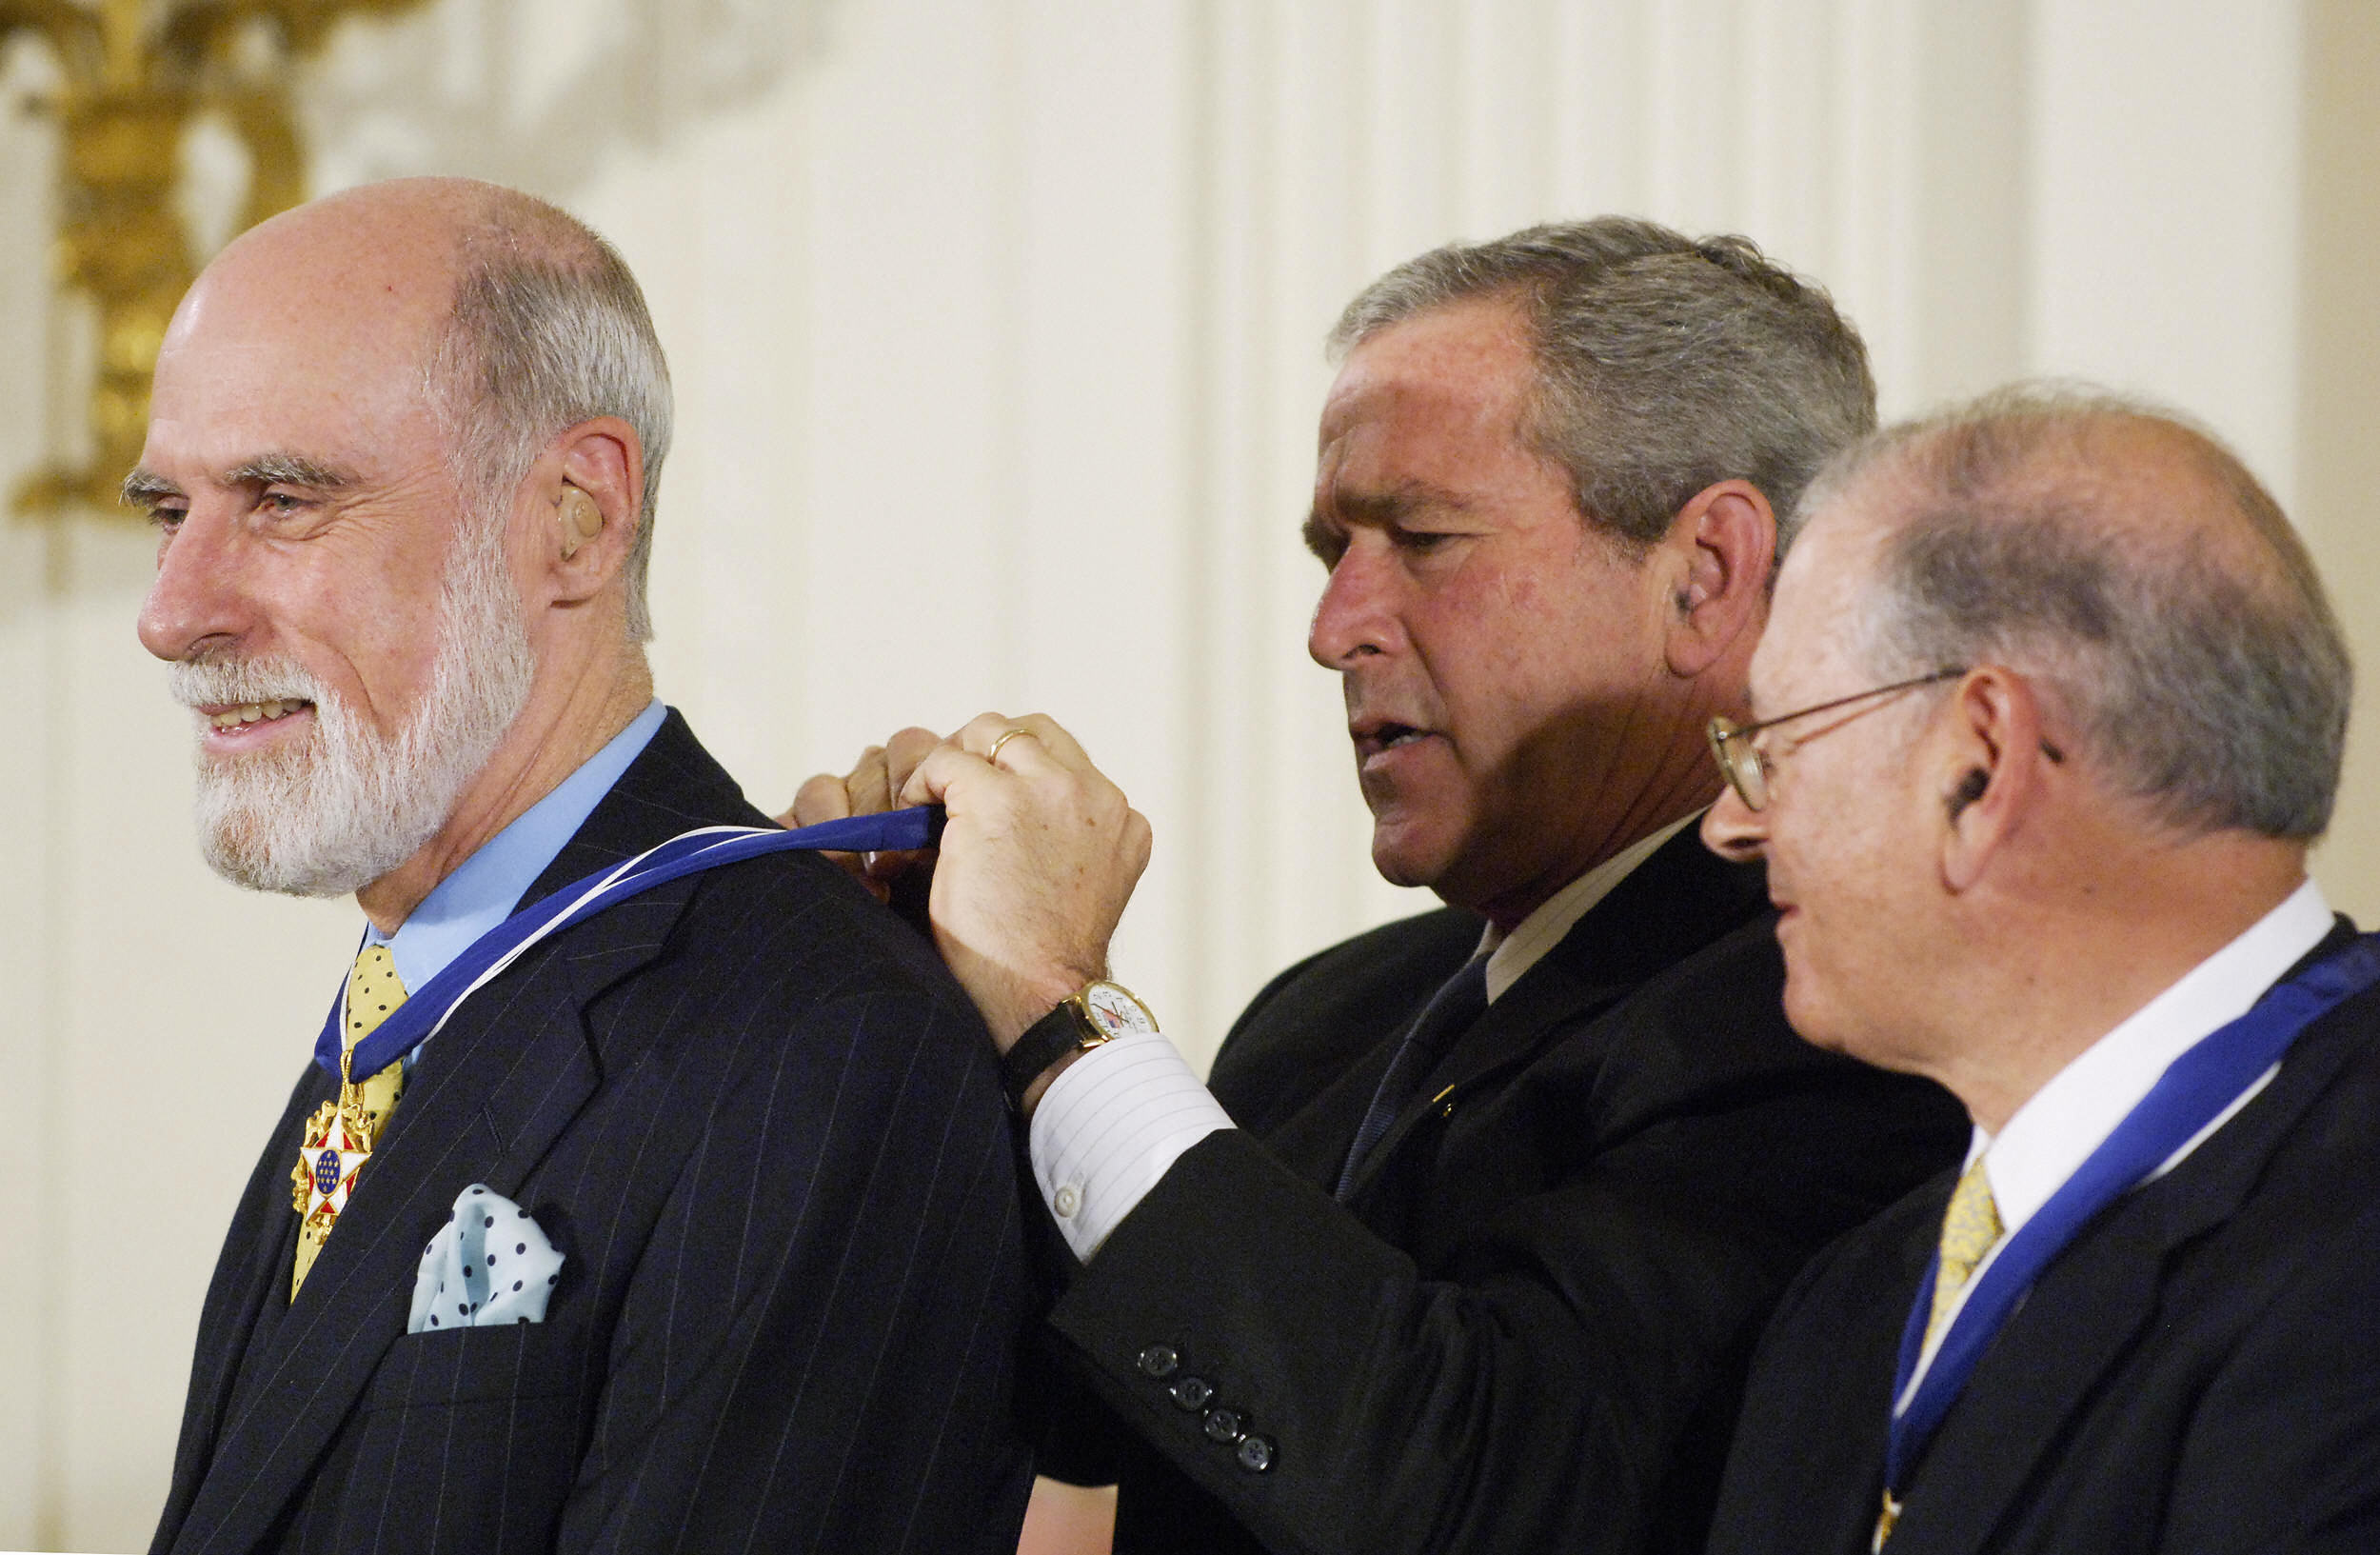 Vint Cerf gets Presidential Medal of Freedom from President George W. Bush.